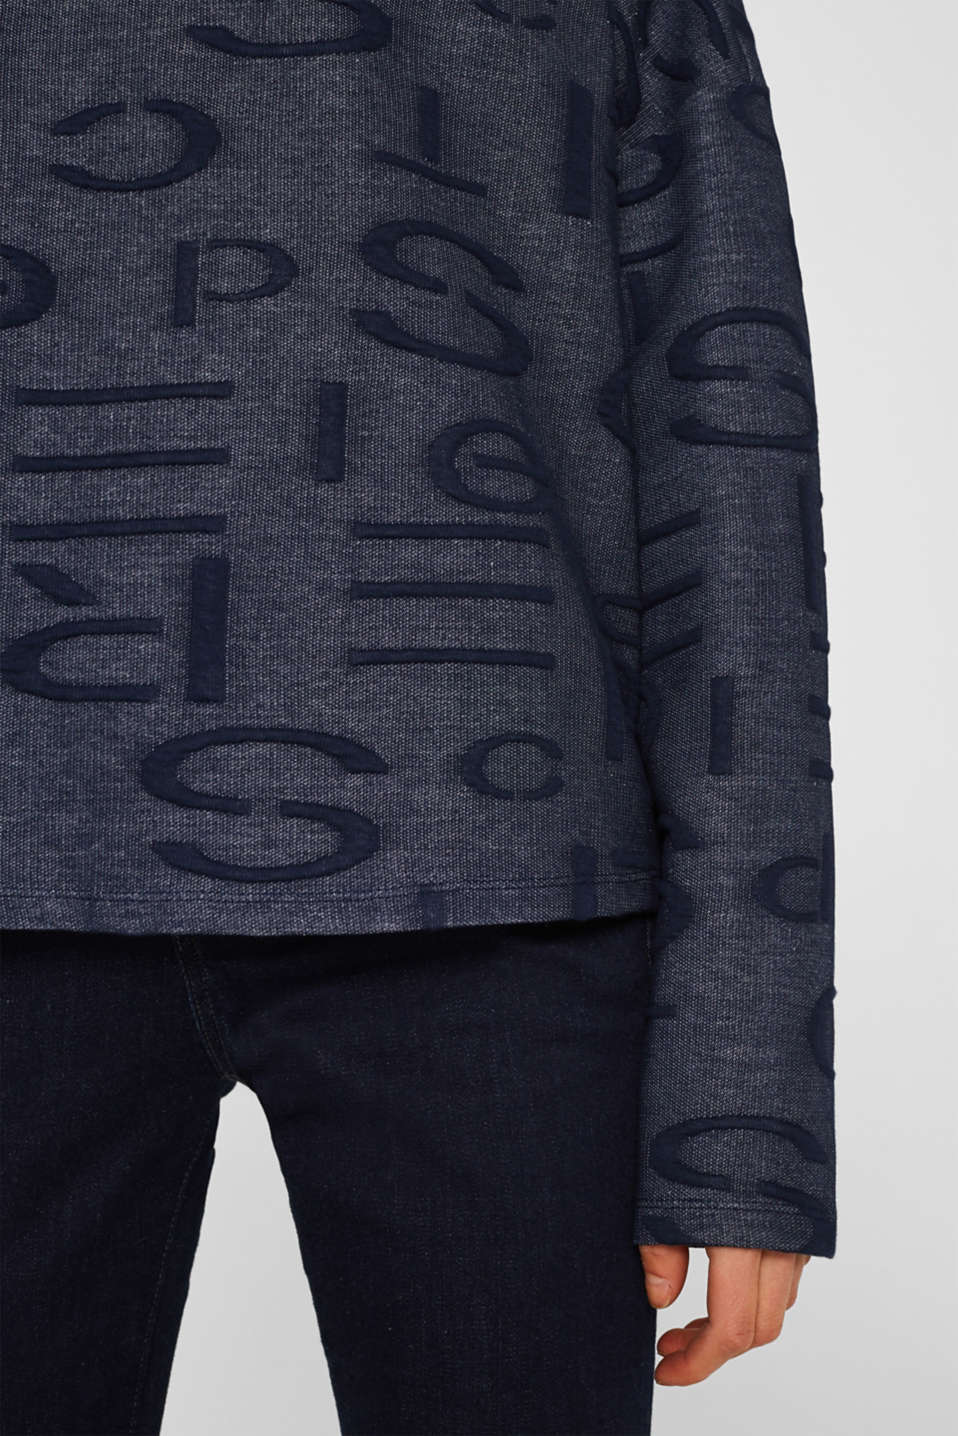 Sweatshirt with a logo jacquard pattern, NAVY, detail image number 2